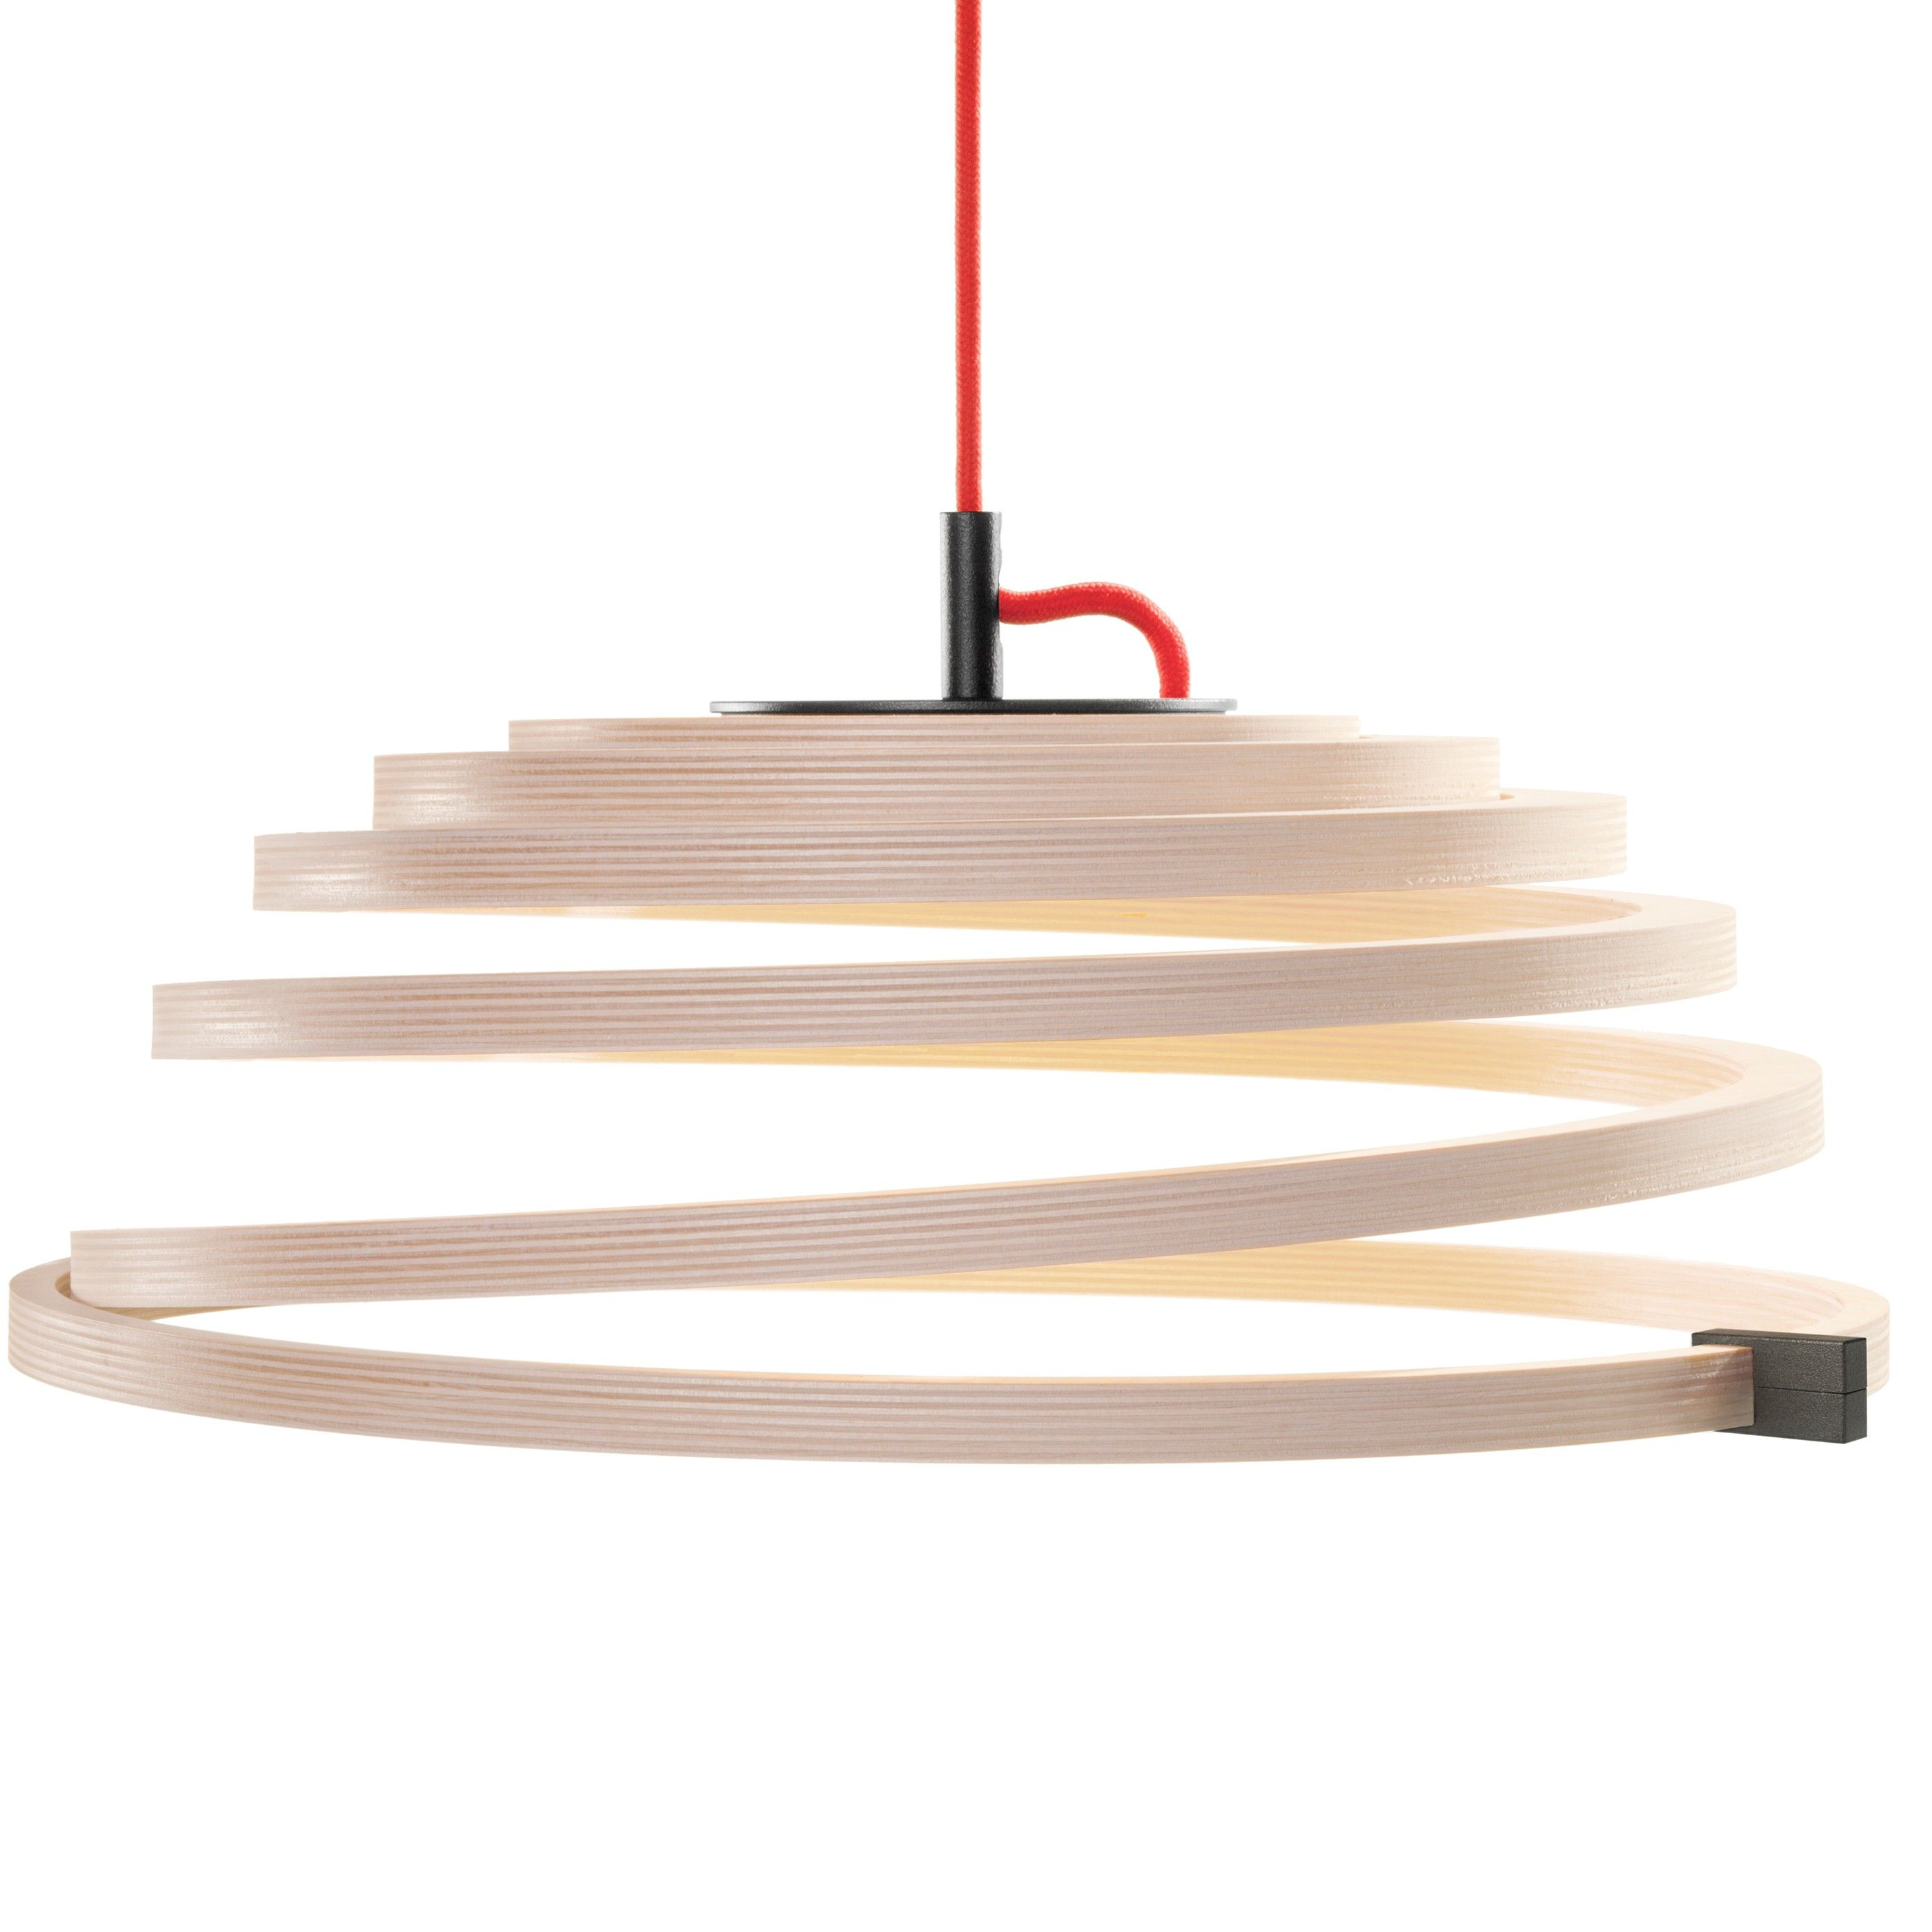 Hanglamp Led Design Secto Design Aspiro 8000 Hanglamp Led Flinders Verzendt Gratis